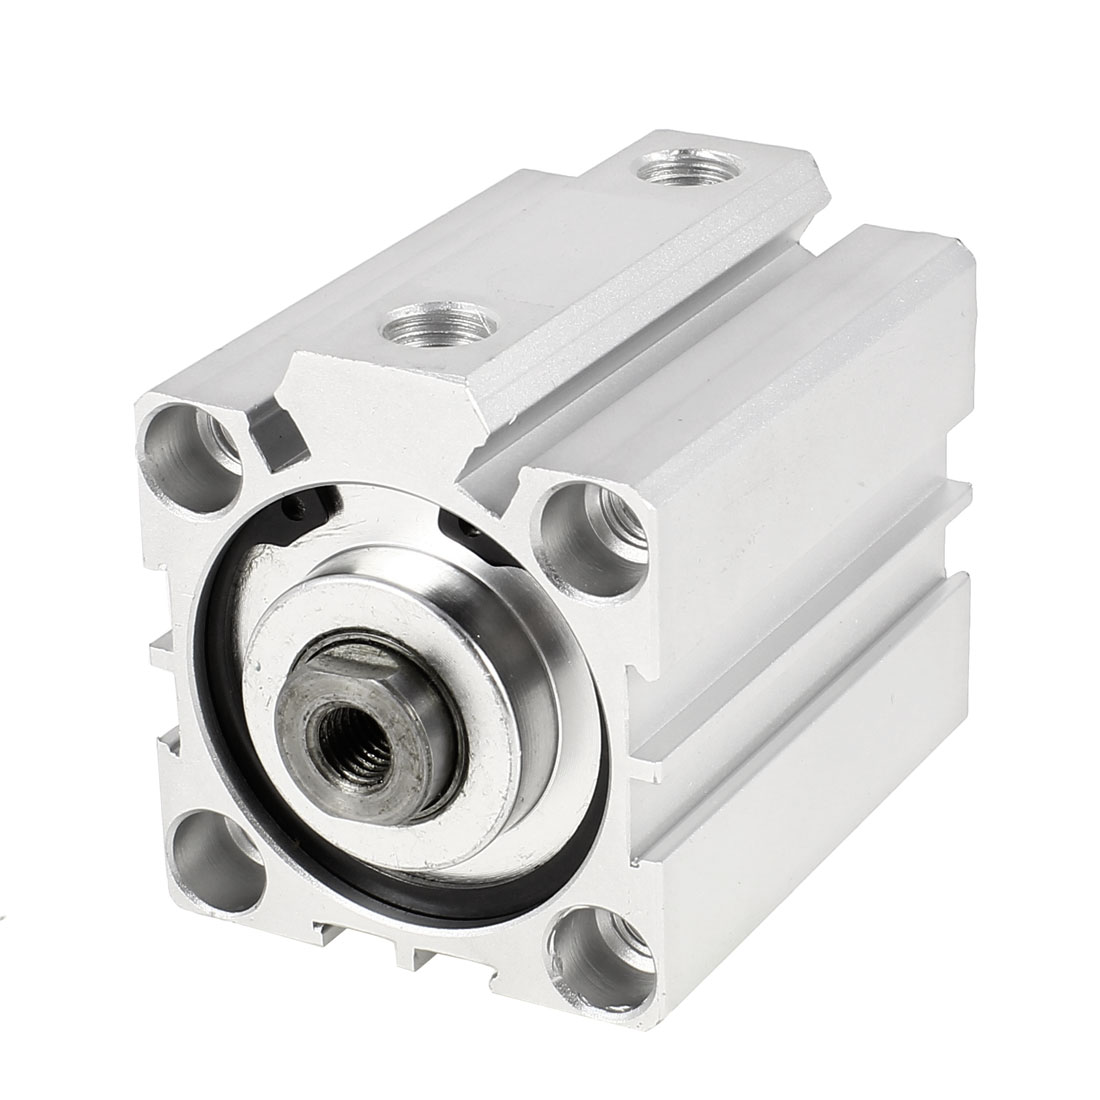 Double Action 40mm Bore 40mm Stroke Compact Thin Pneumatic Air Cylinder